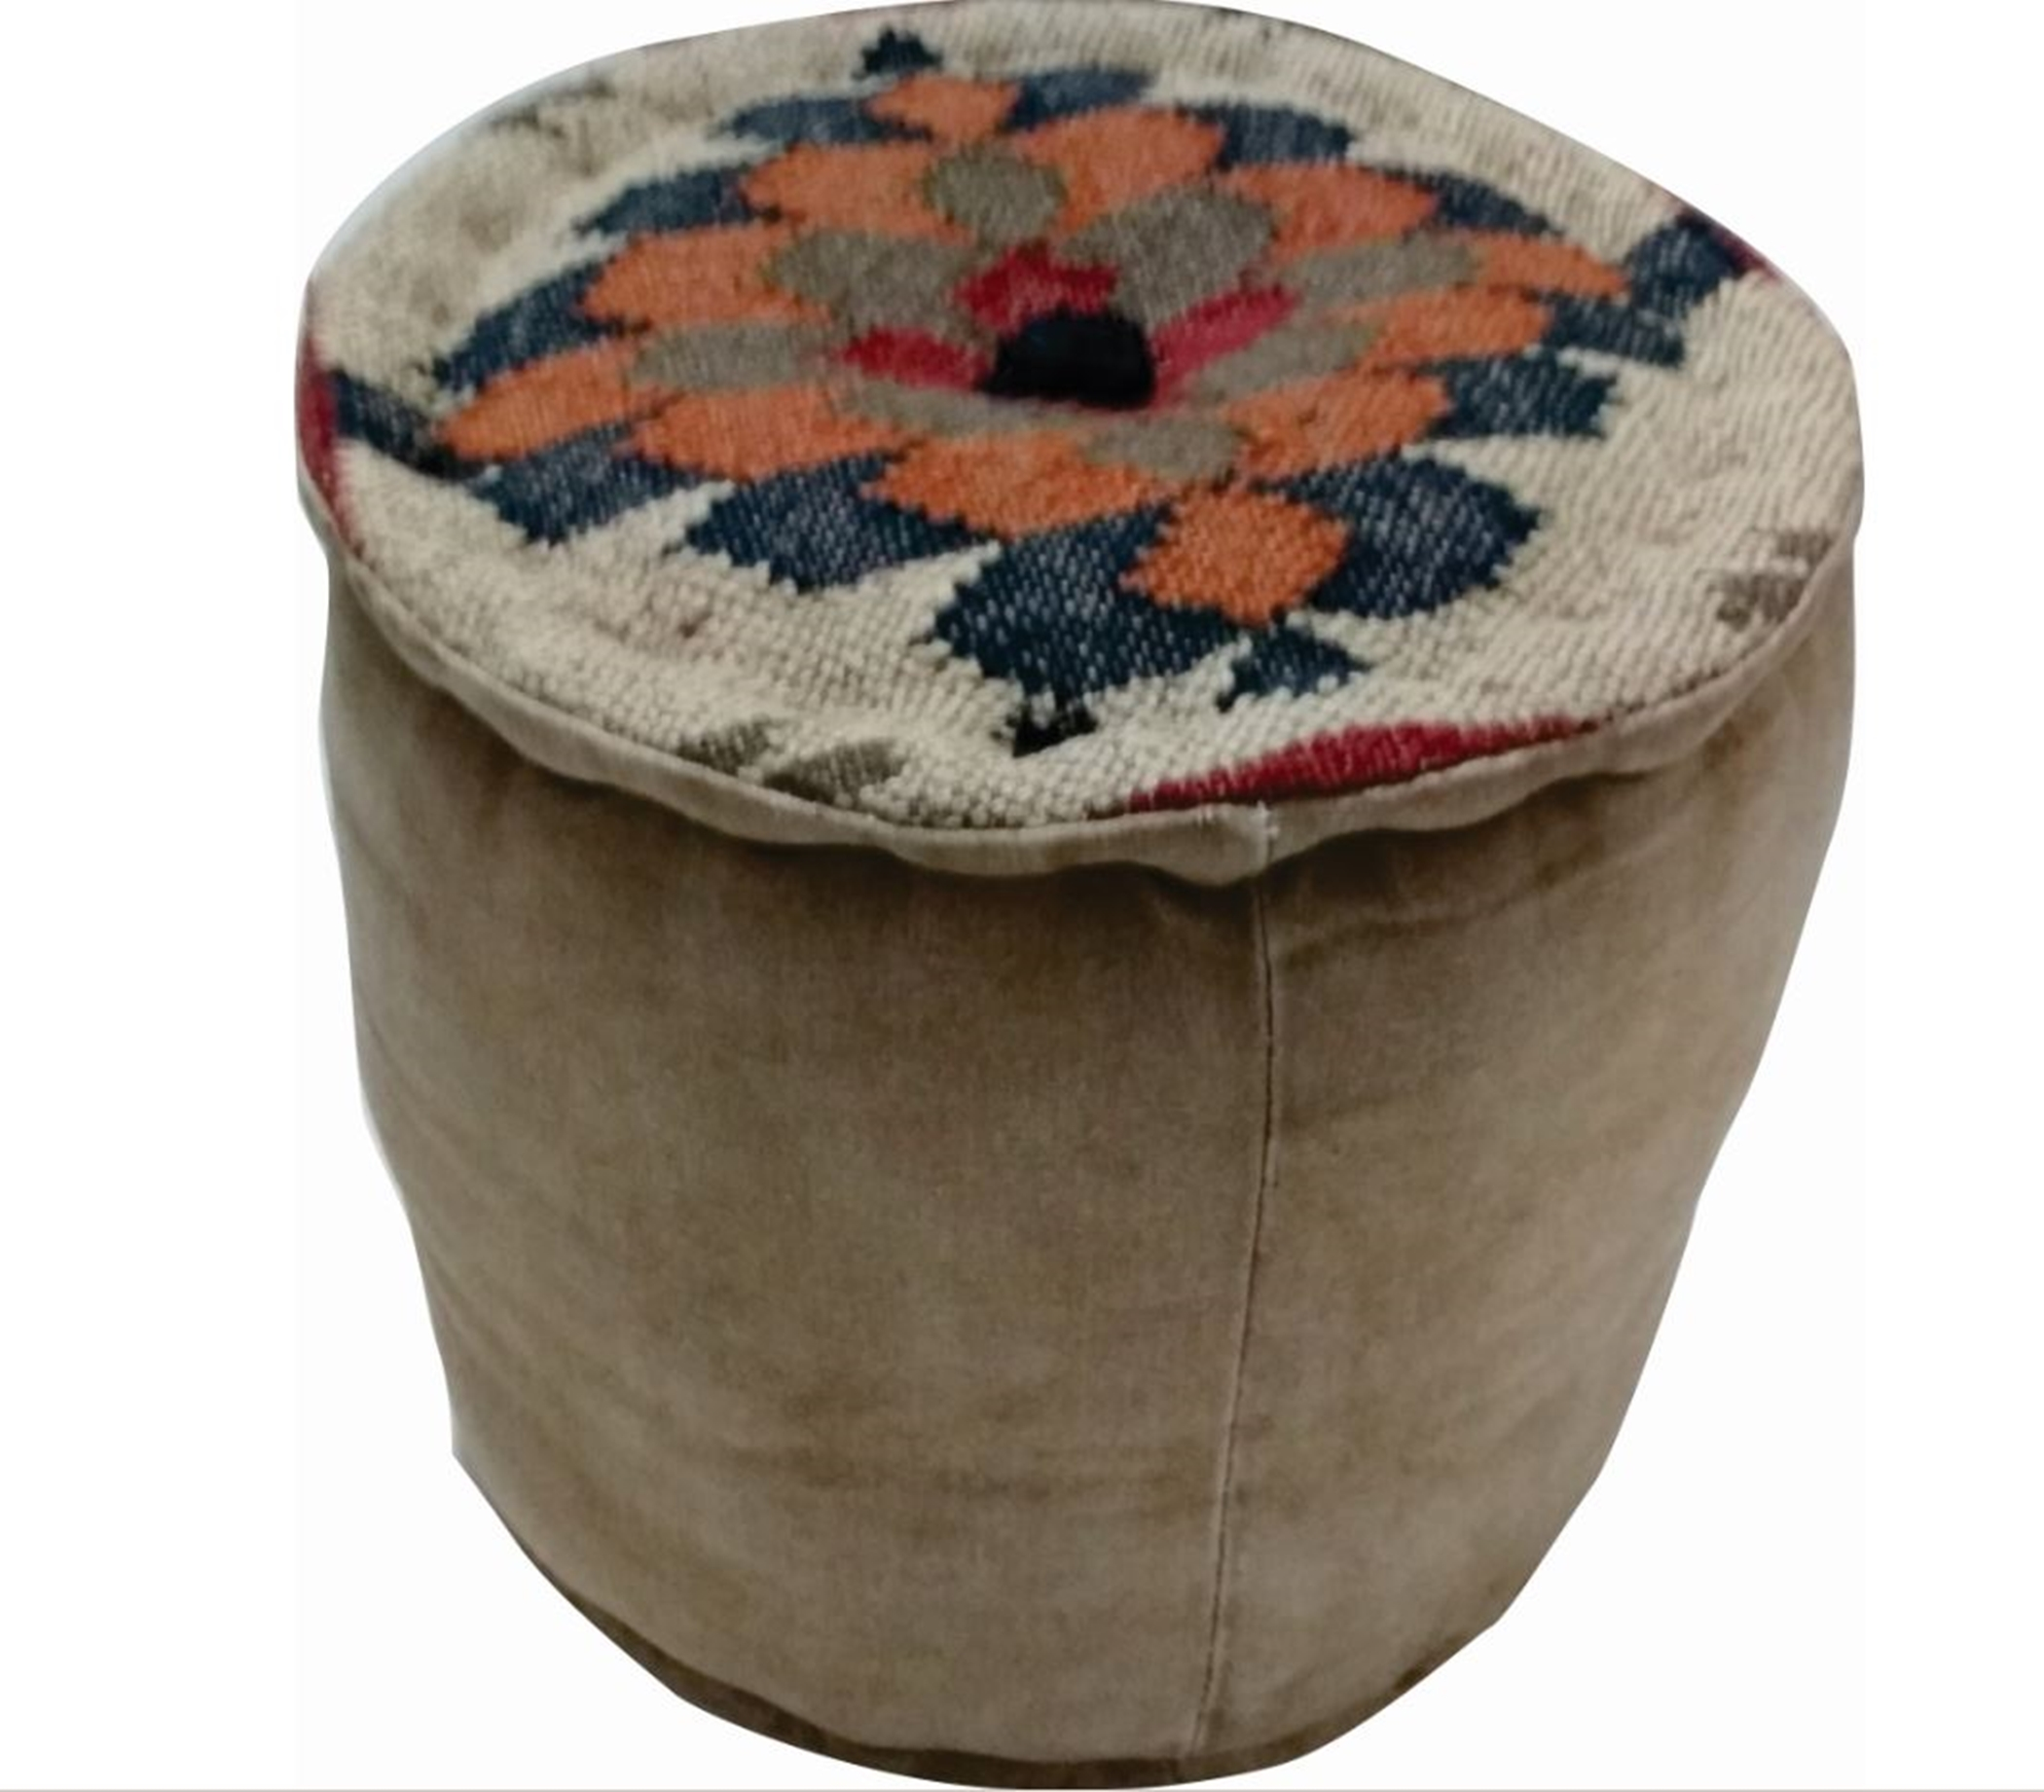 918501 - Accent Stool